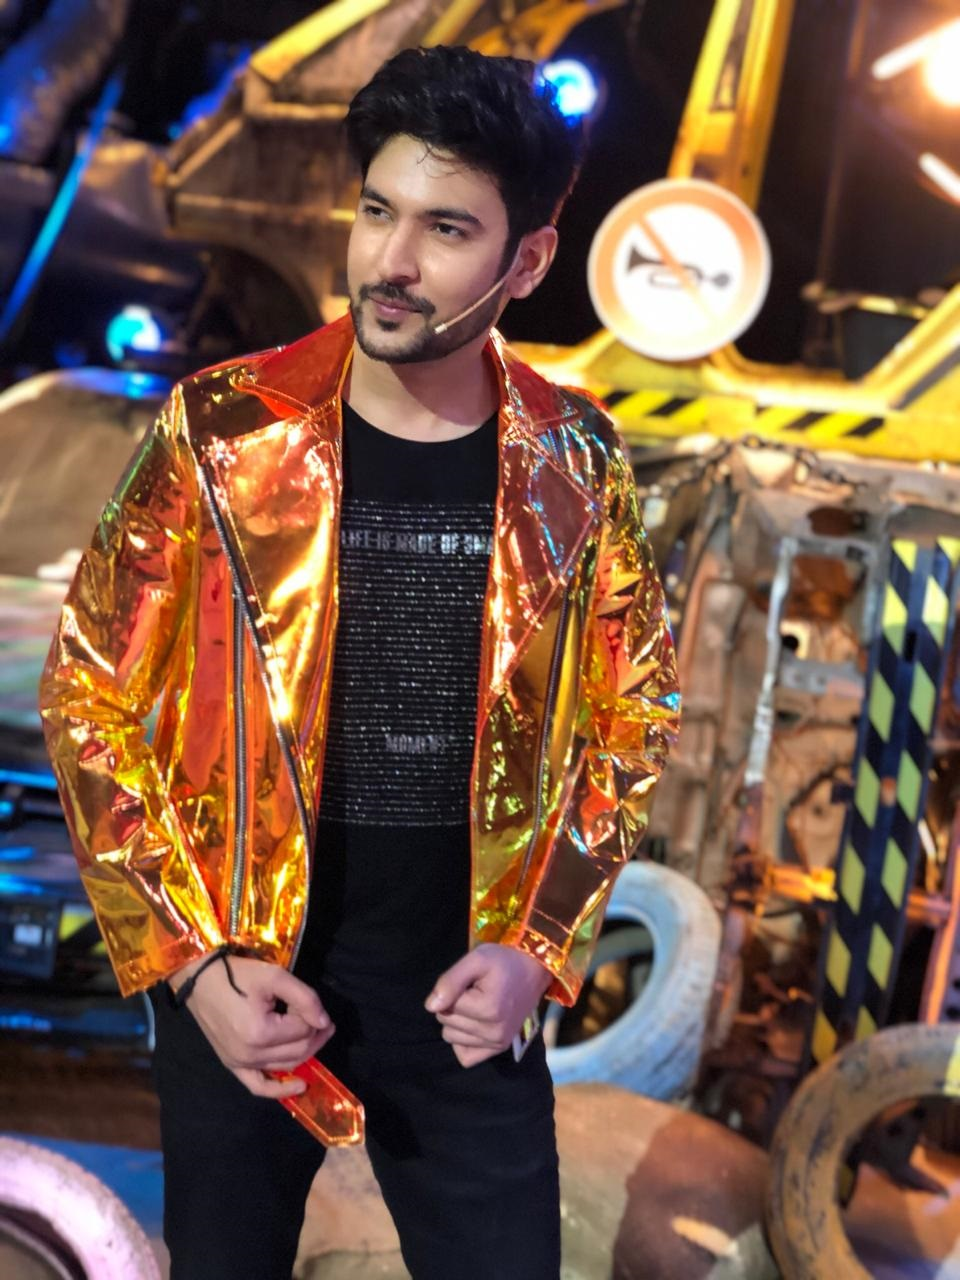 Khatron Ke Khiladi 10: Shivin Narang's Golden Boy Avatar From Finale Is AMAZING!